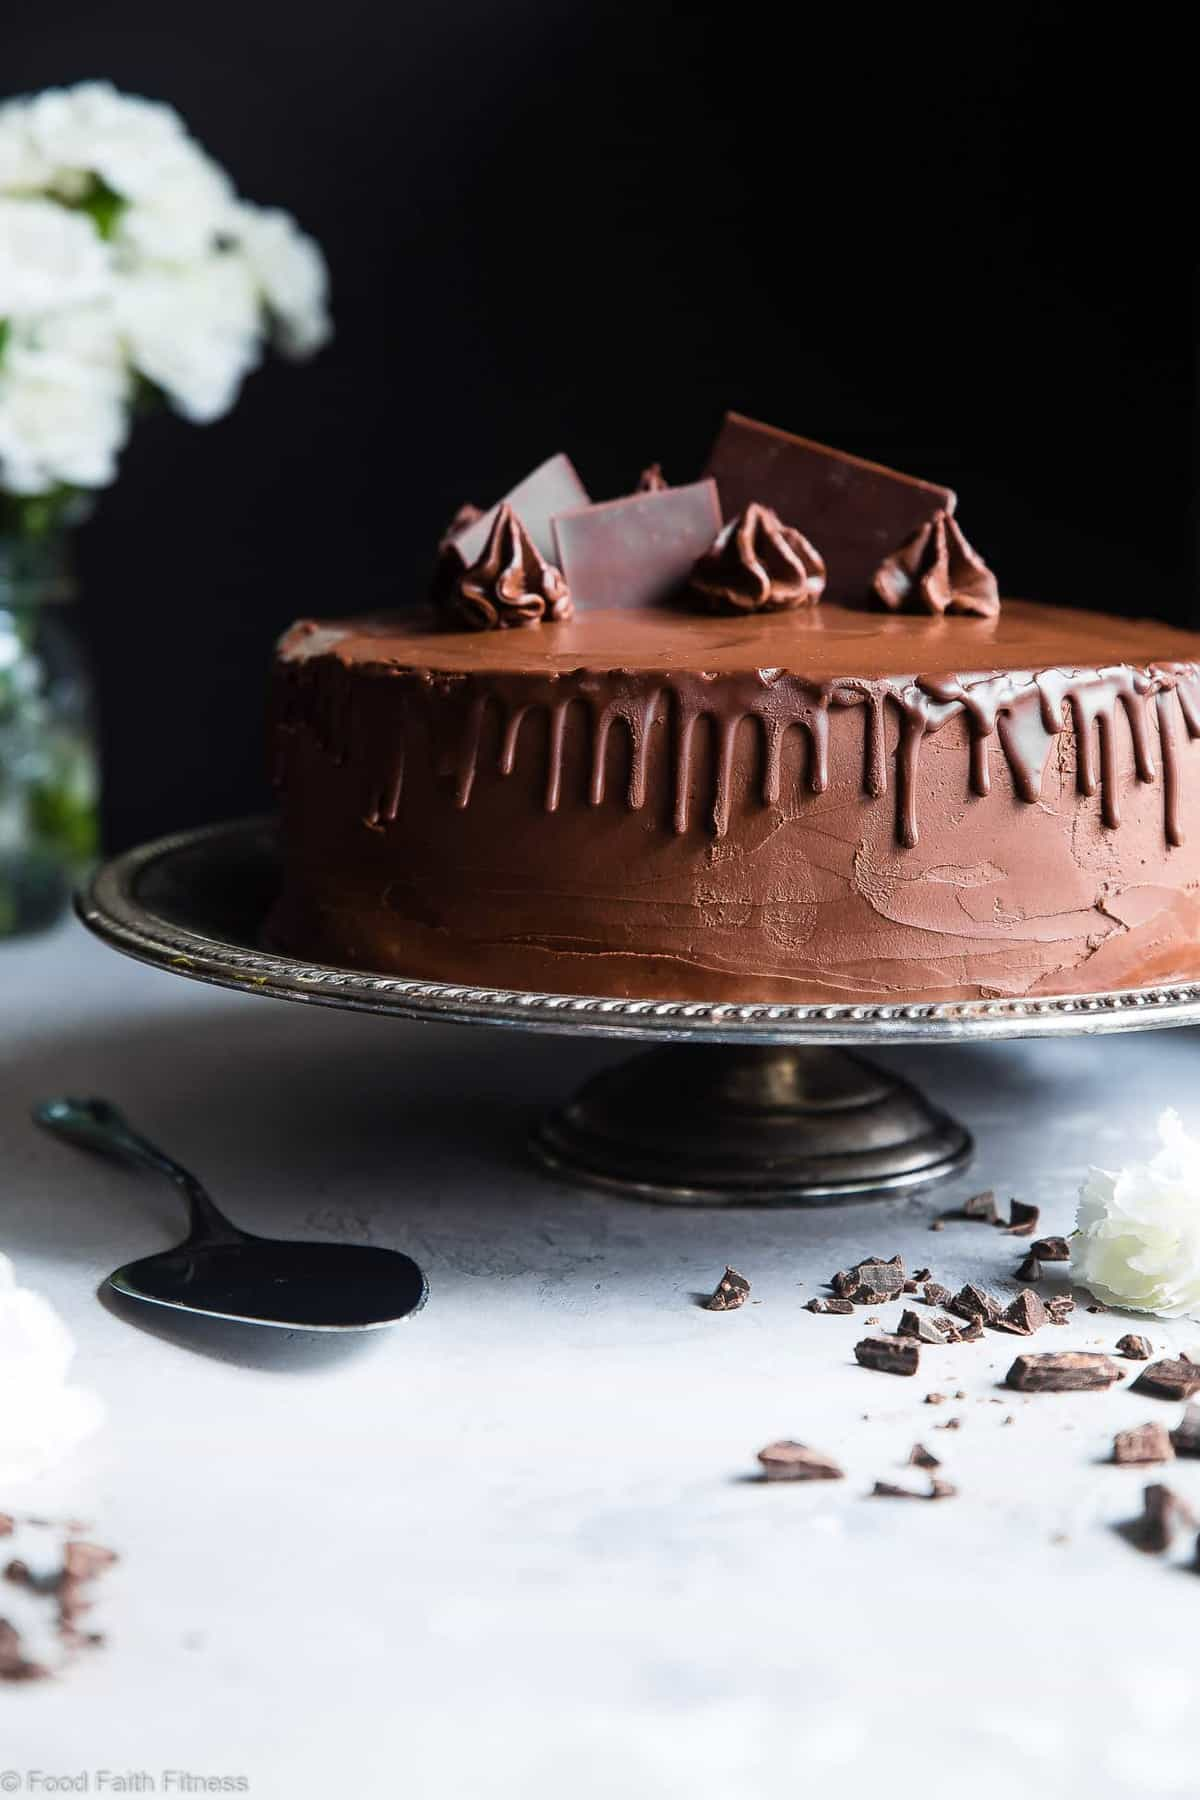 The Best Paleo Chocolate Avocado Cake with Coconut Flour -This dairy and gluten free Chocolate cake is SO fluffy and moist you'll never believe it's butter/oil free and made with avocado! The BEST healthy chocolate cake you will ever have! | #Foodfaithfitness | #Paleo #Grainfree #Dairyfree #Healthy #cake